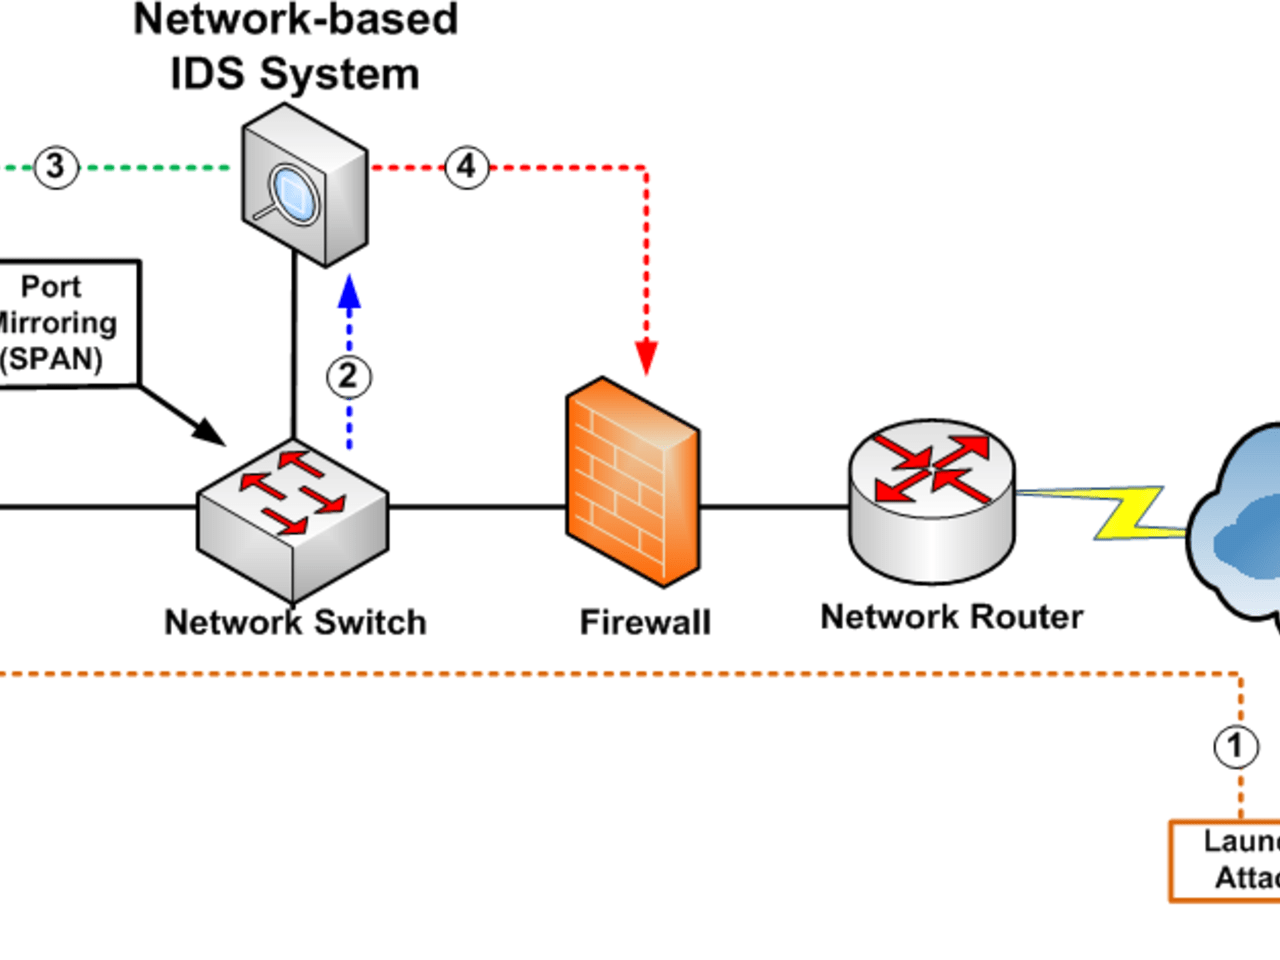 ids network diagram micro usb to hdmi wiring based intrusion detection system using deep